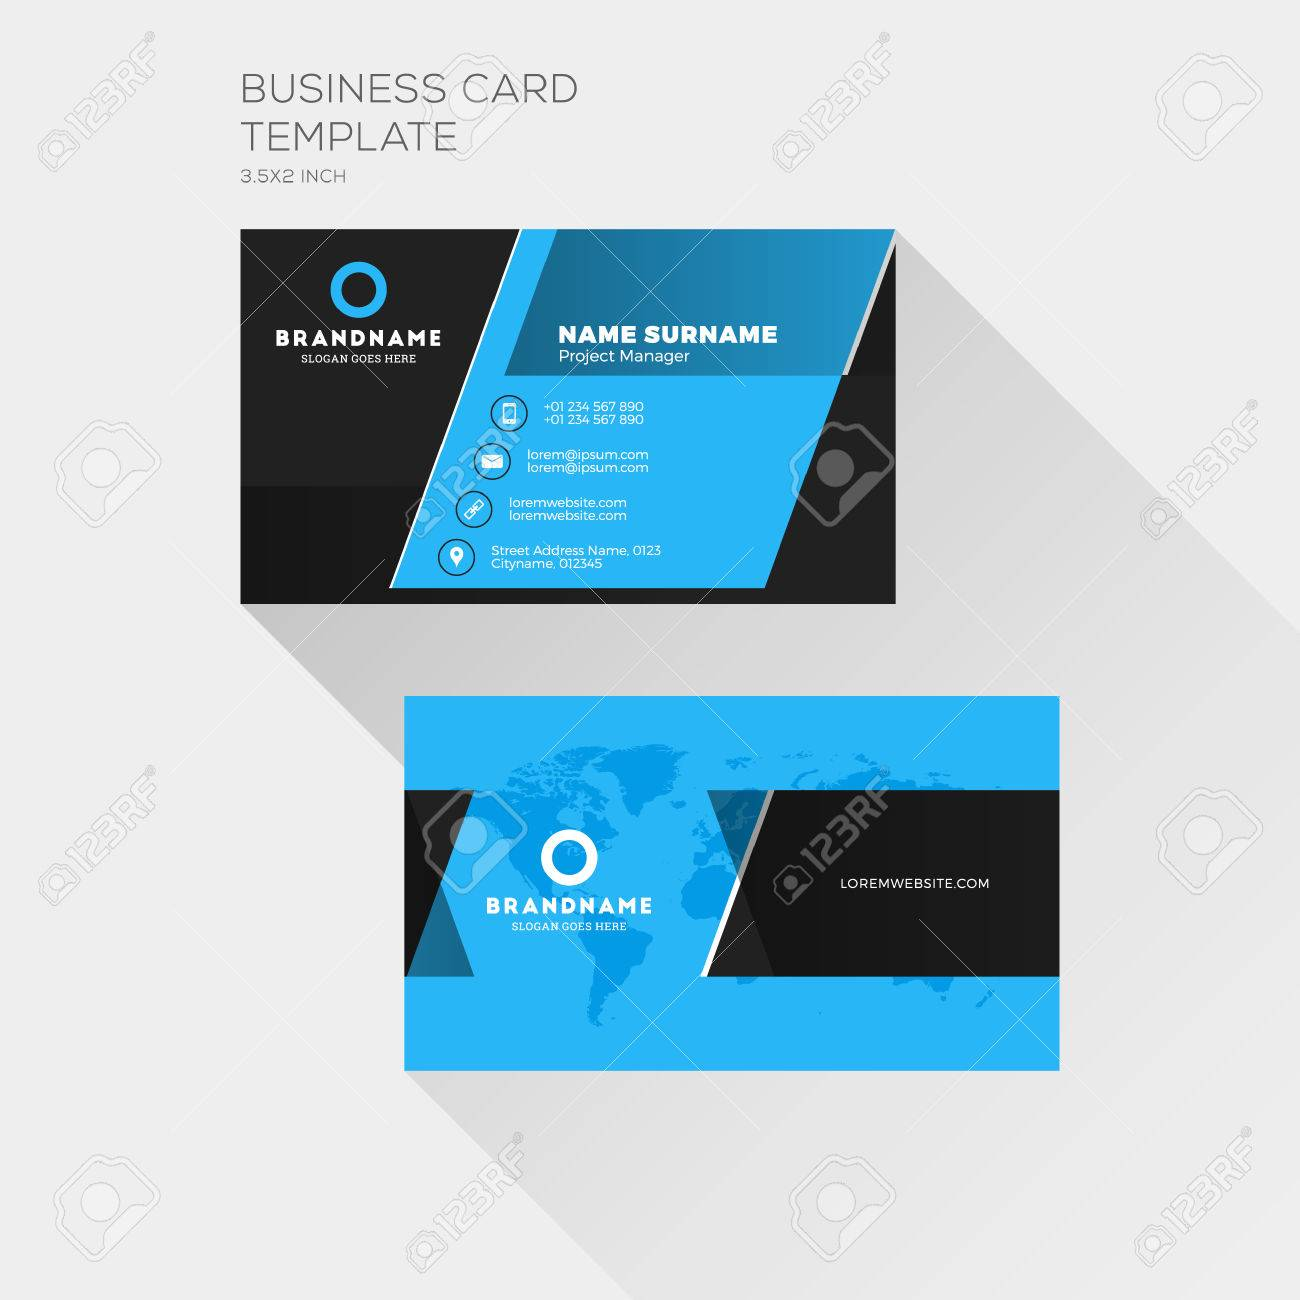 Corporate business card print template personal visiting card corporate business card print template personal visiting card with company logo clean flat design cheaphphosting Image collections